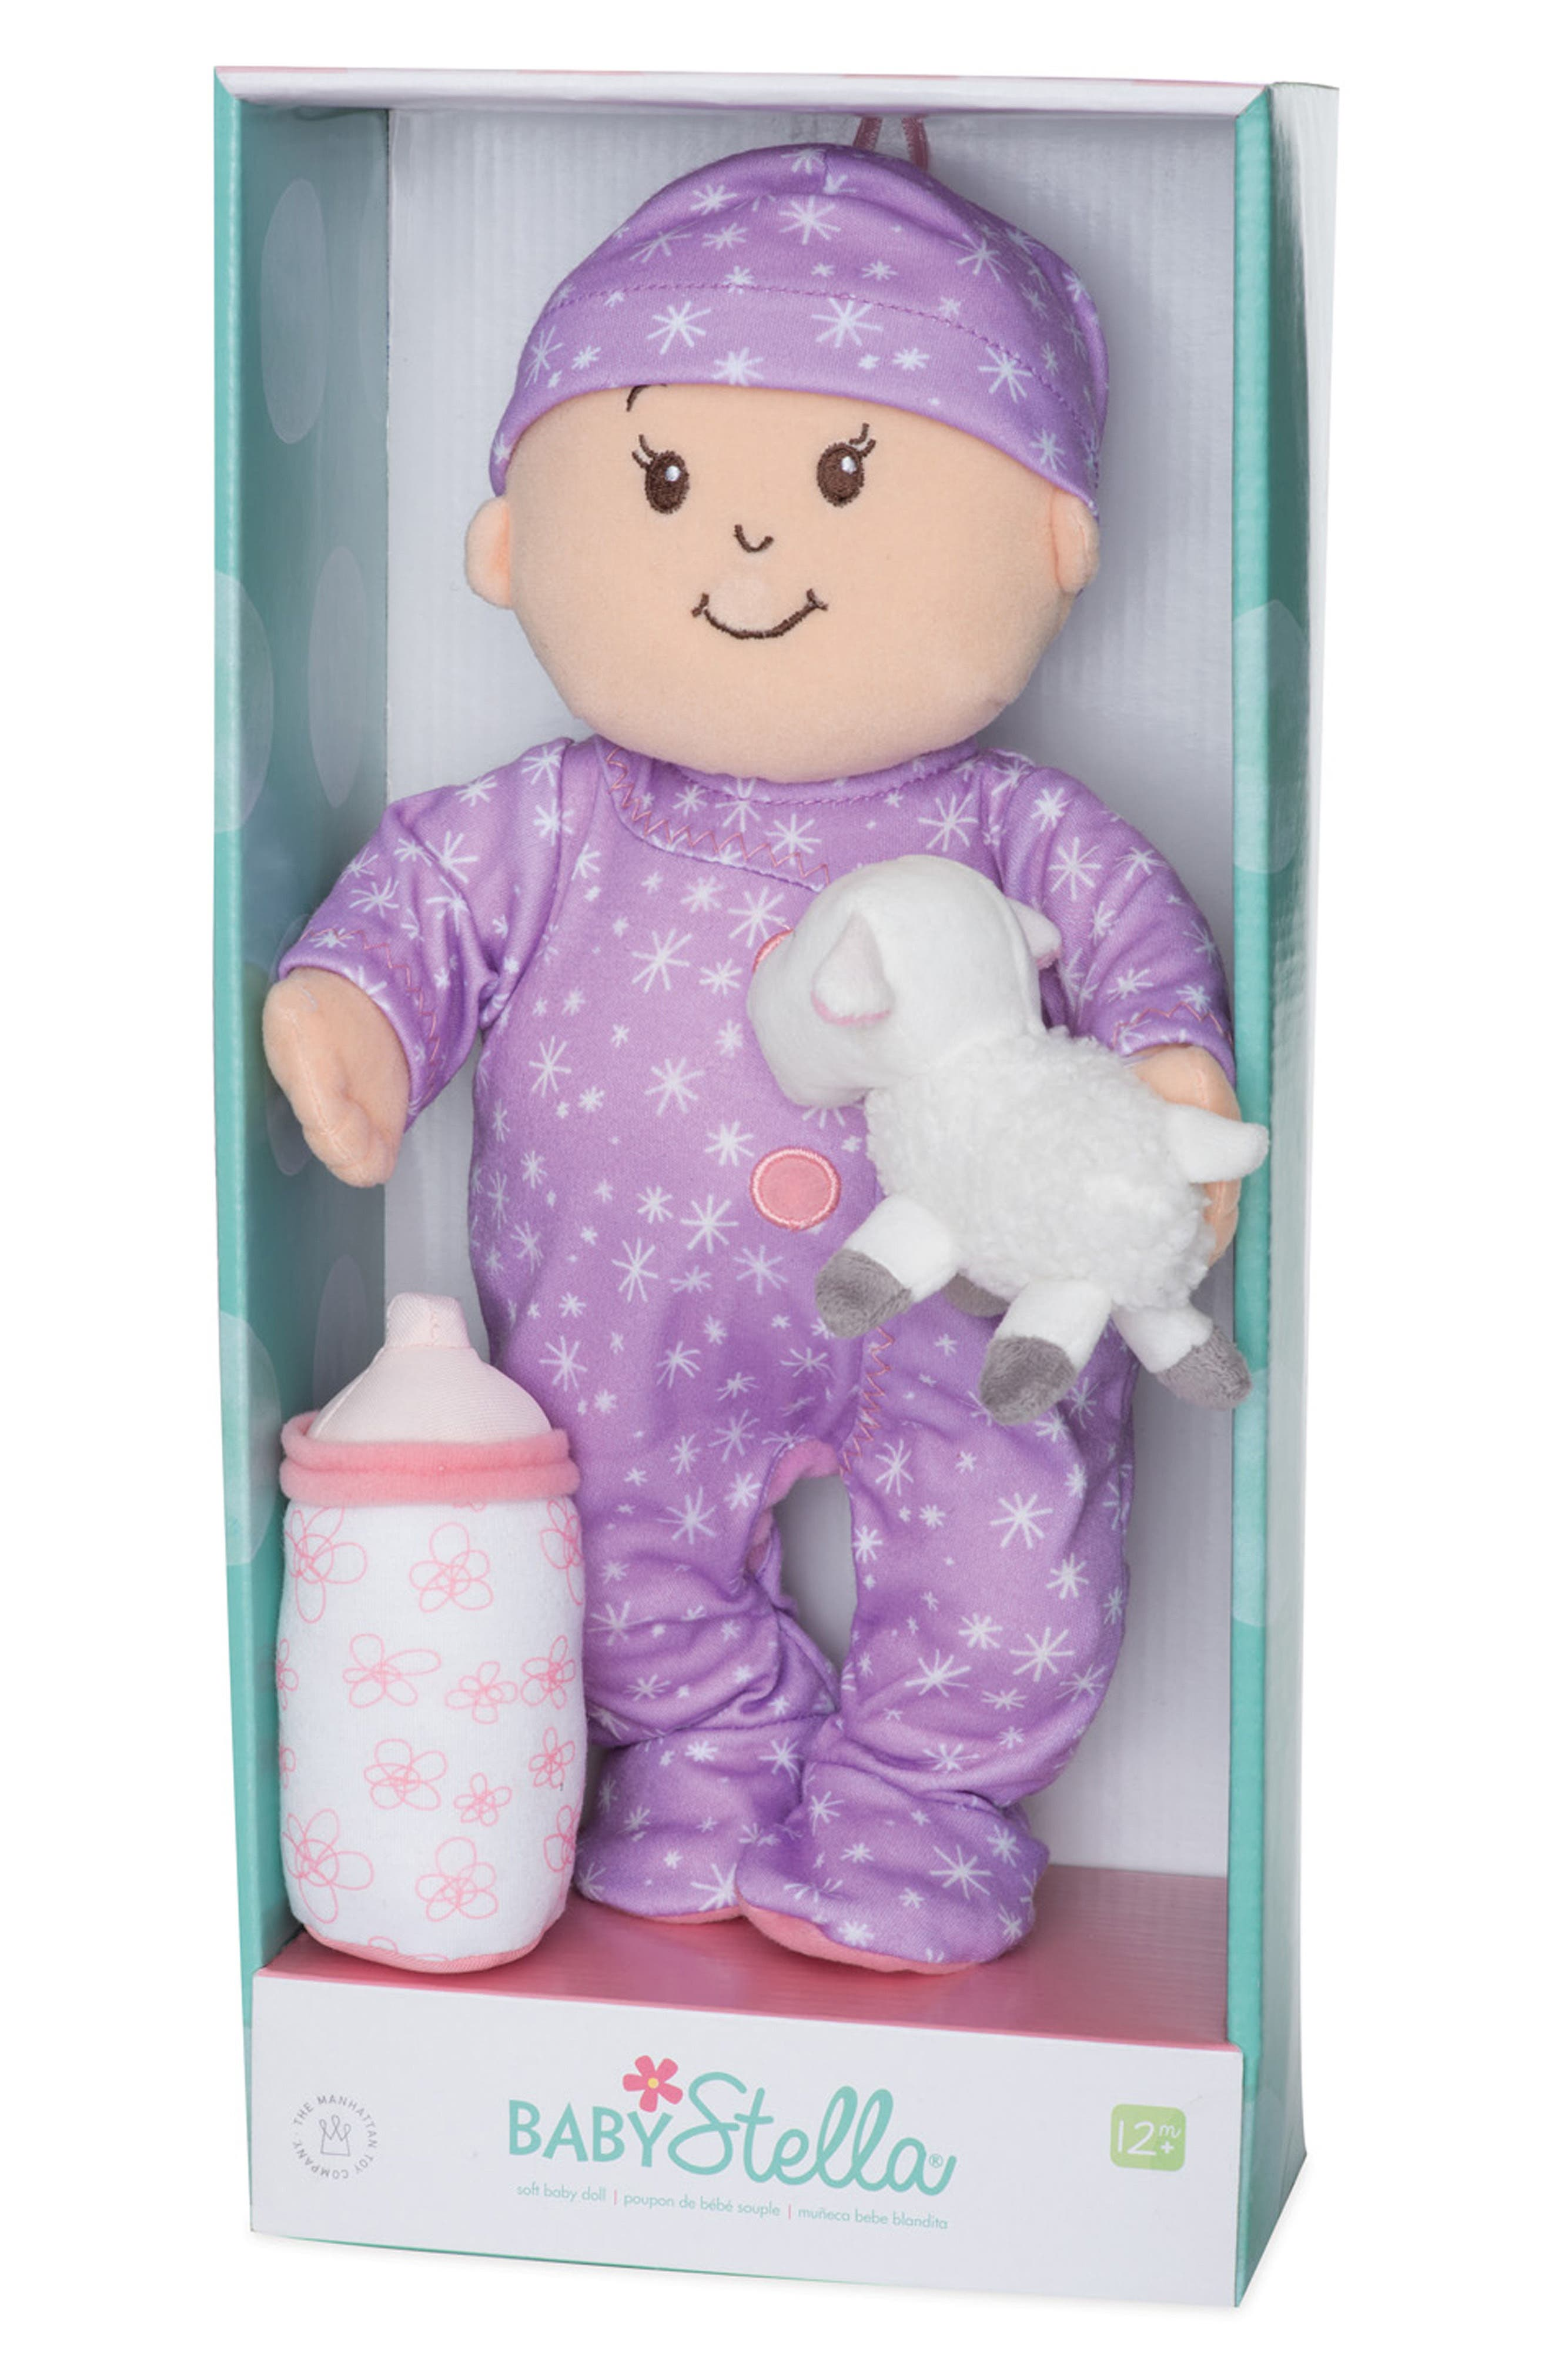 Baby Stella - Sweet Dreams Doll Toy,                             Alternate thumbnail 3, color,                             Purple